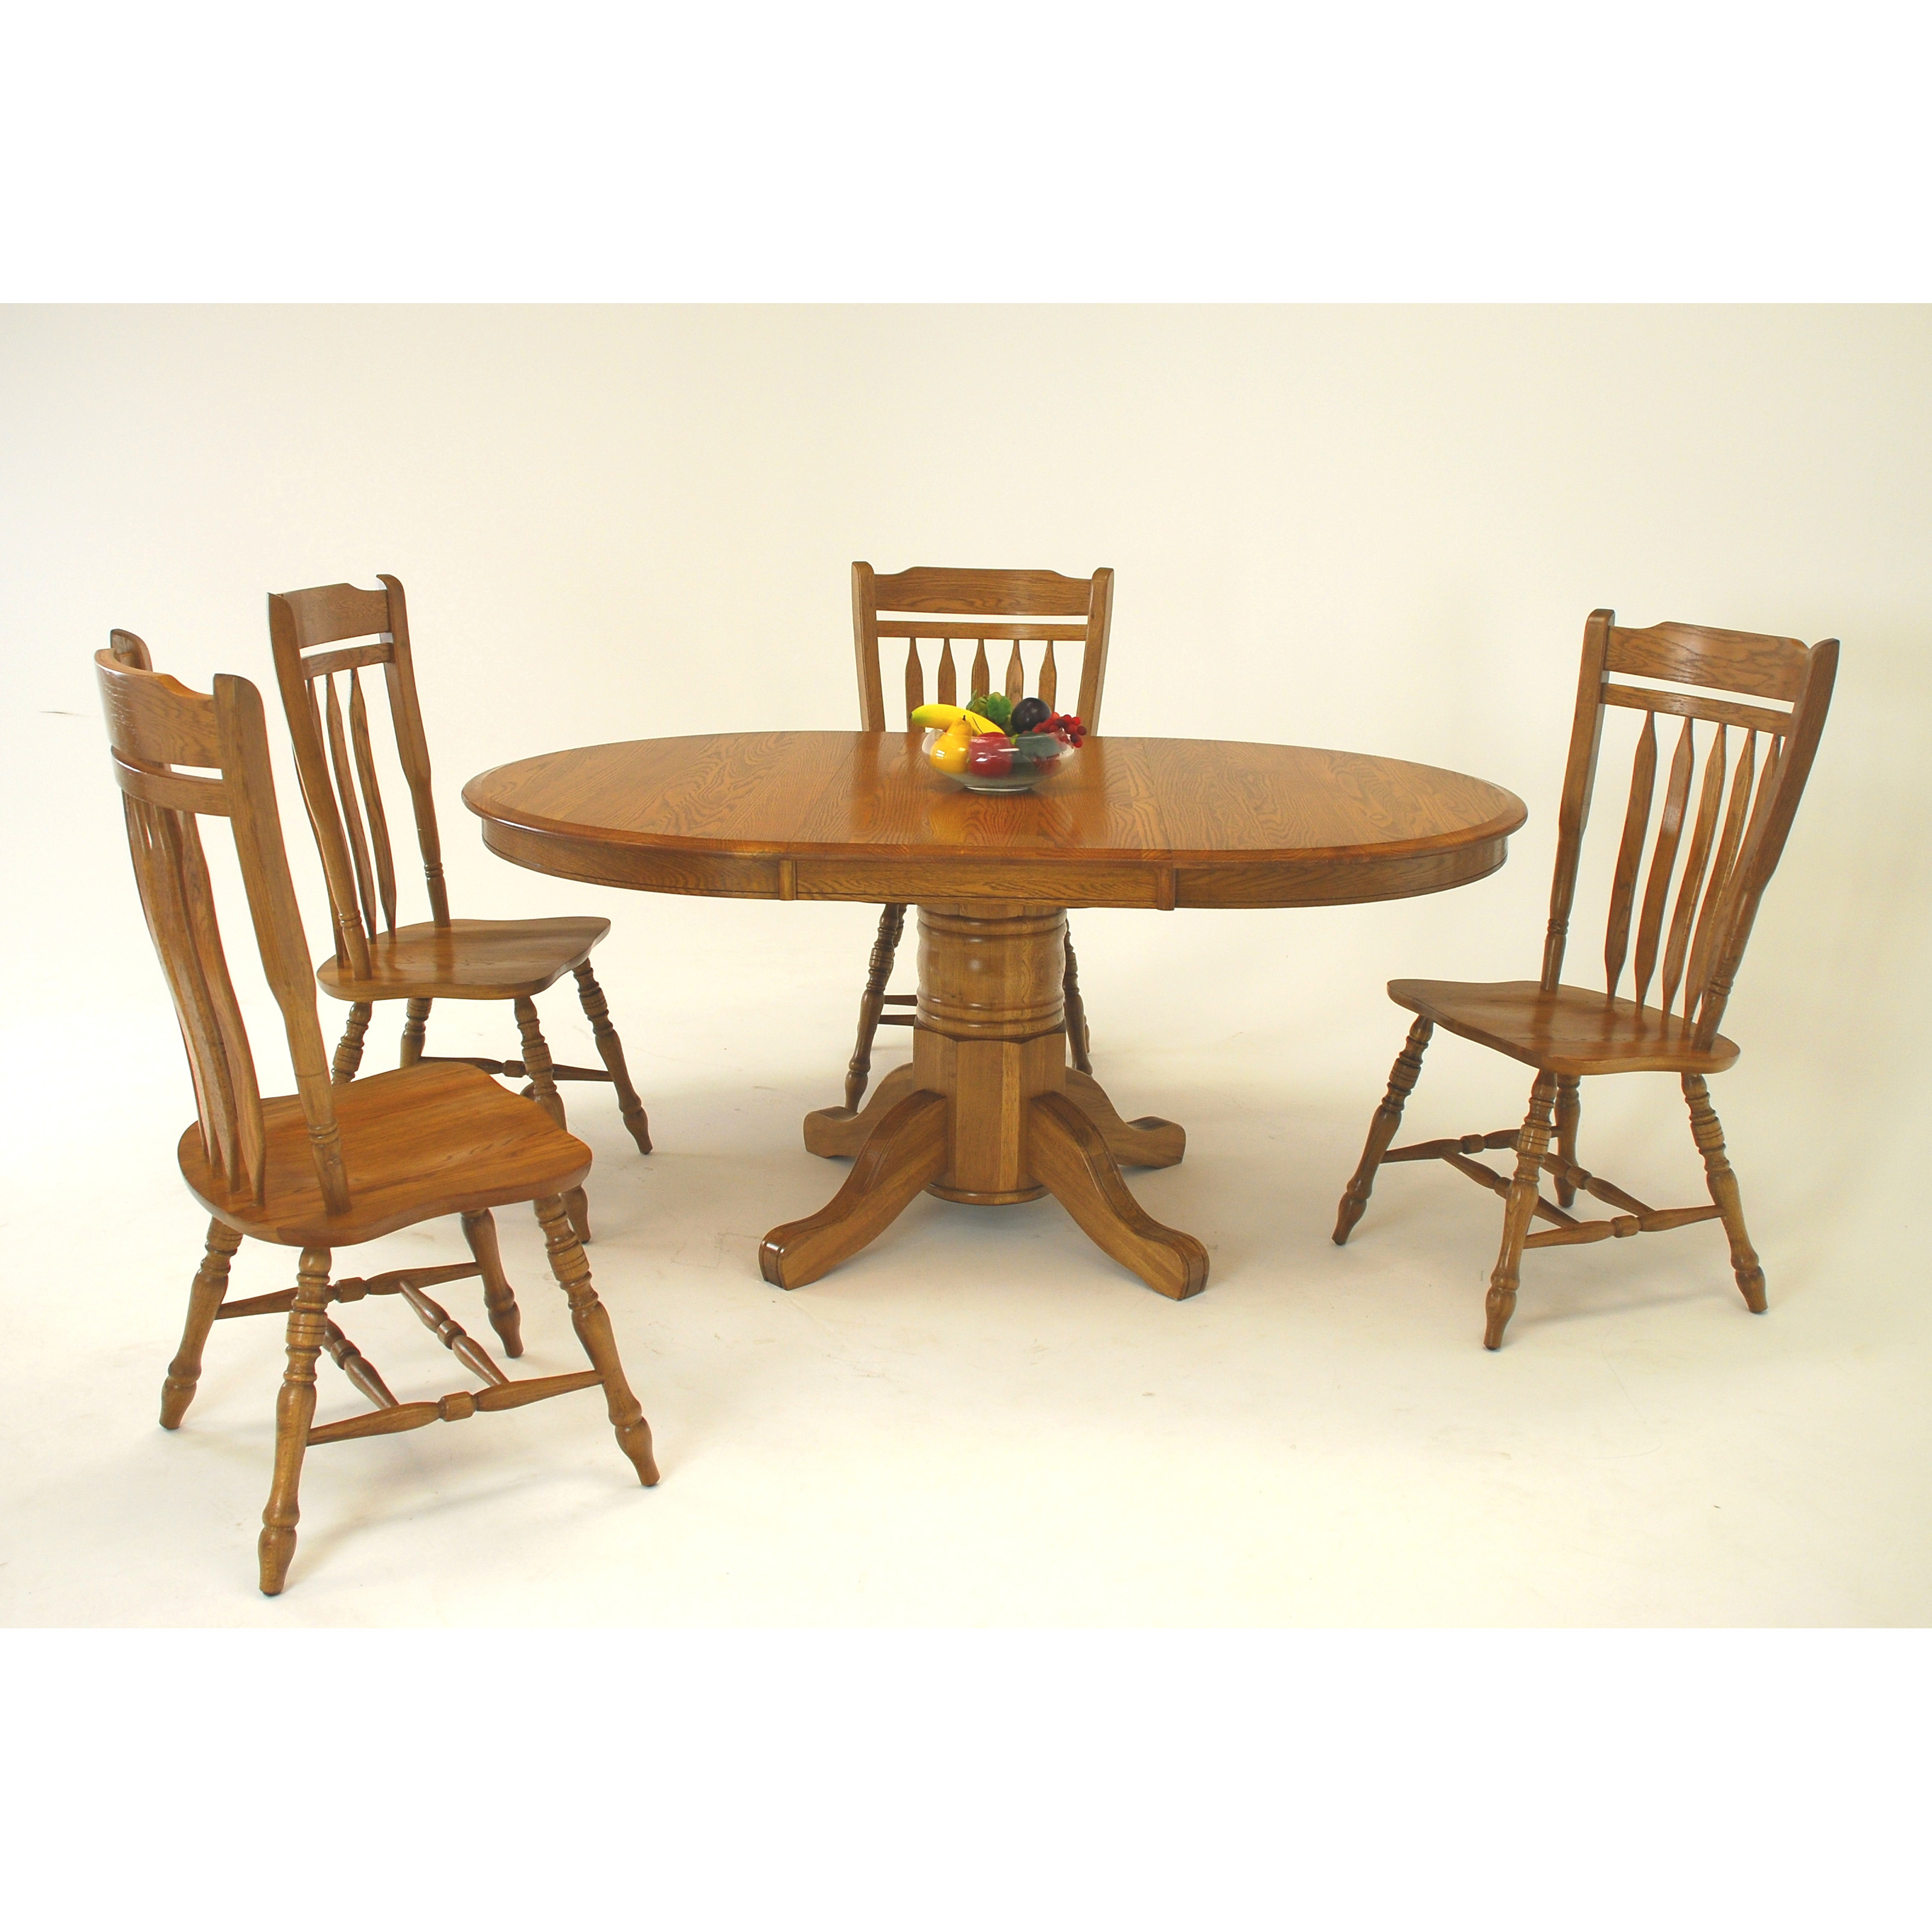 Classic solid wood 42 inch round pedestal dining table at for 42 inch round dining table